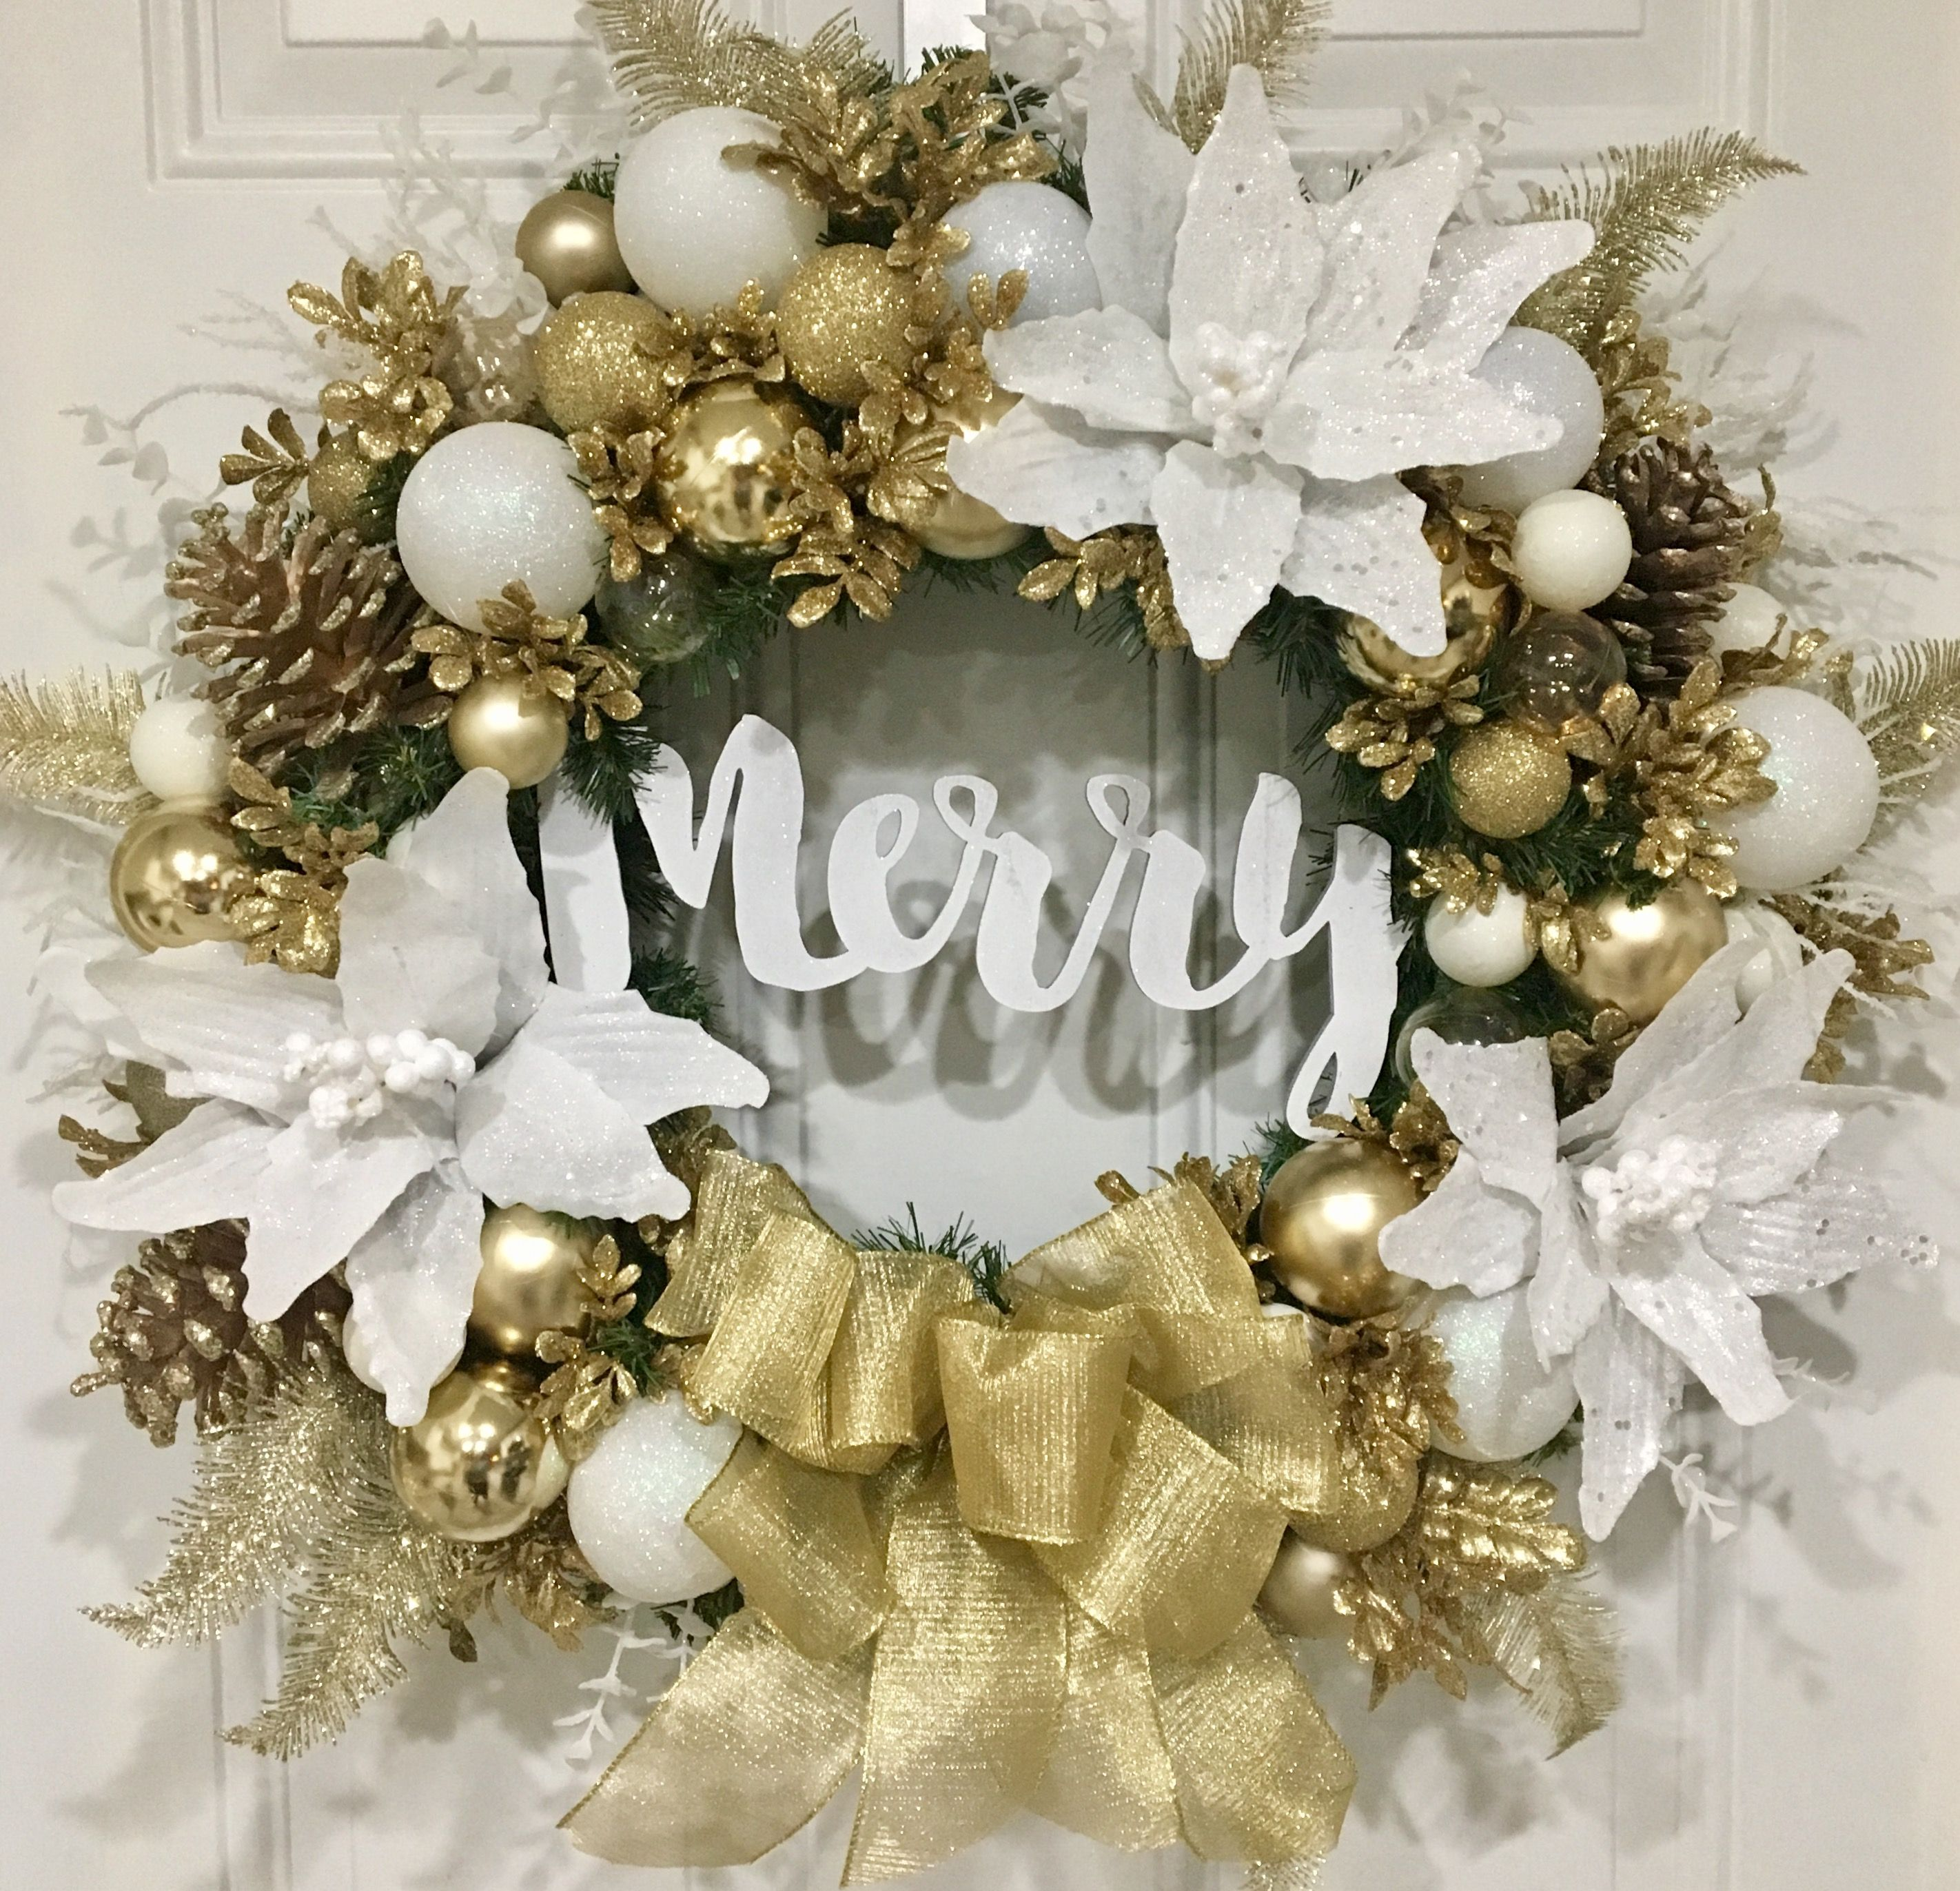 Christmas Wreath Holiday Wreath Merry White And Gold Wreath Front Door Christmas Decorations Christmas Wreaths Gold Christmas Decorations